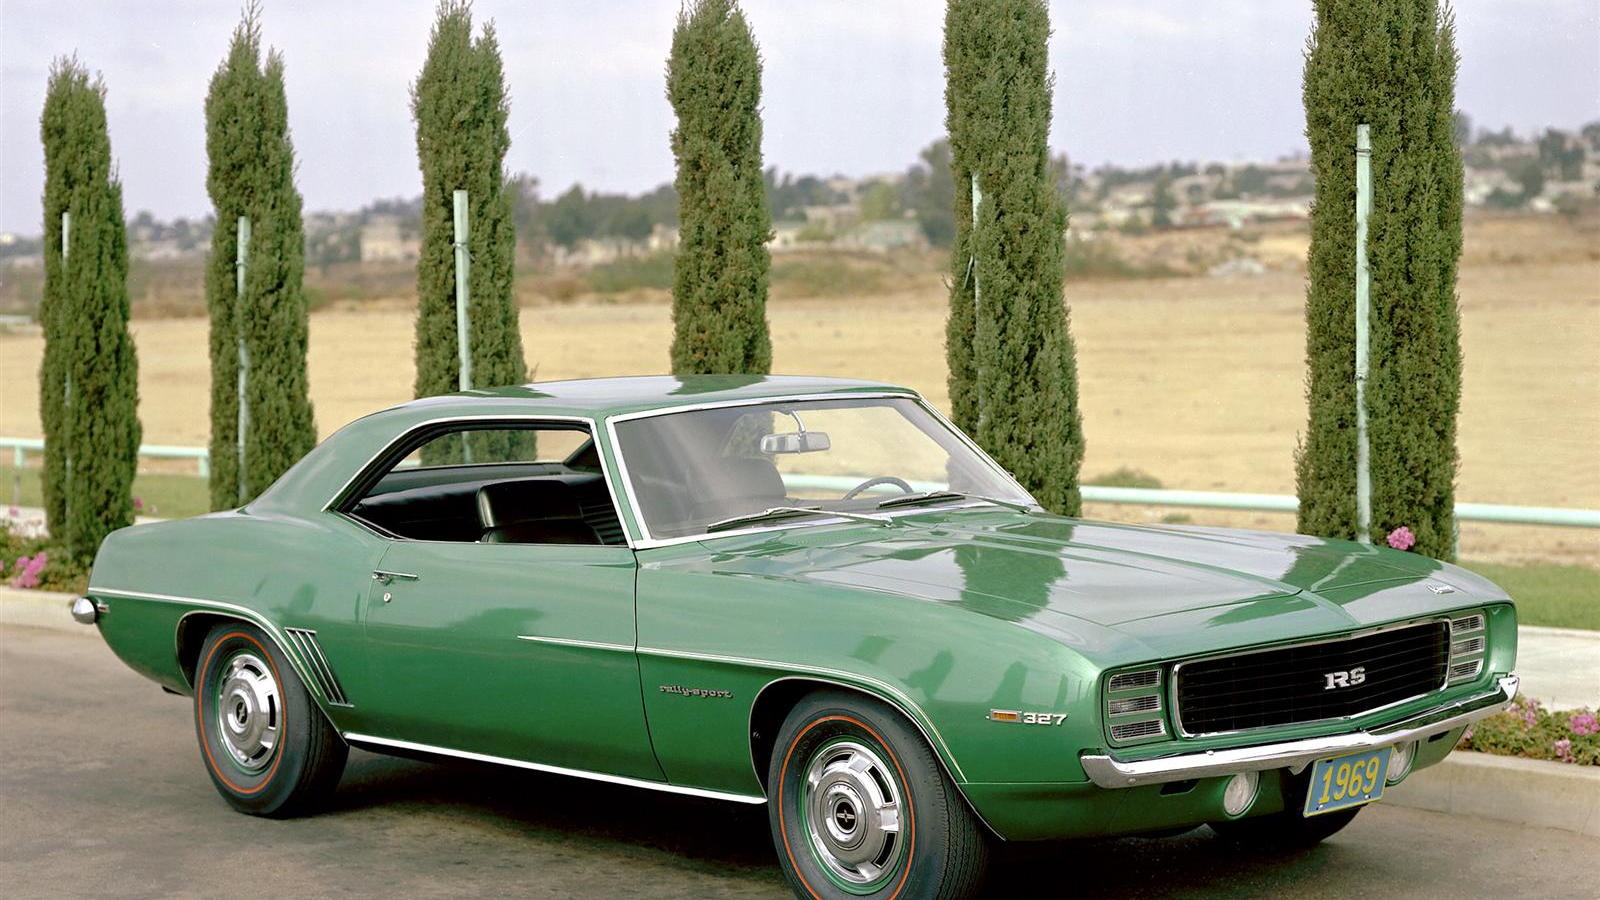 1969 Chevrolet Camaro RS in Rallye Green